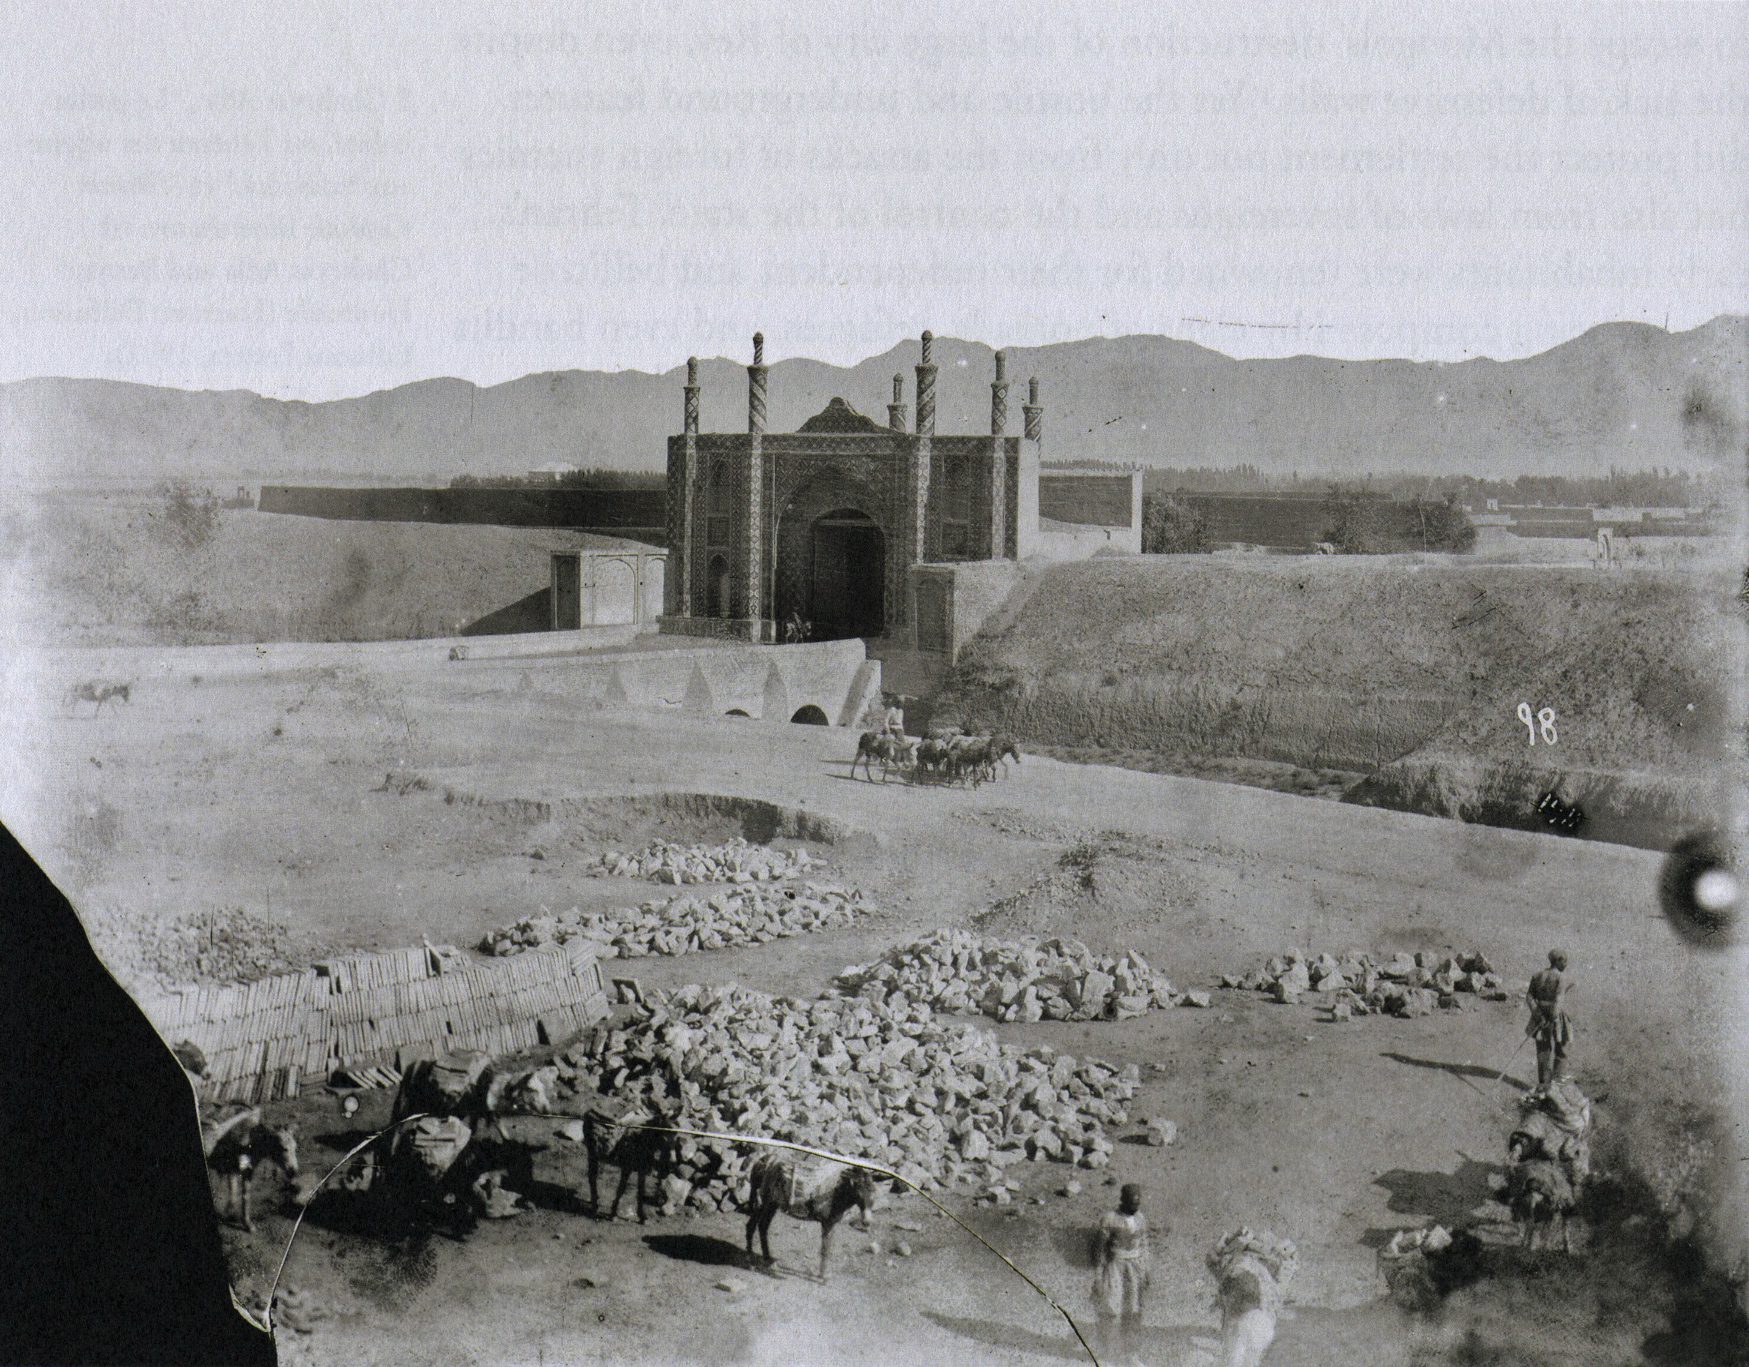 antoin sevruguin_dowlat gate, ne city gate, with alborz mountains, 1880-1930_p66